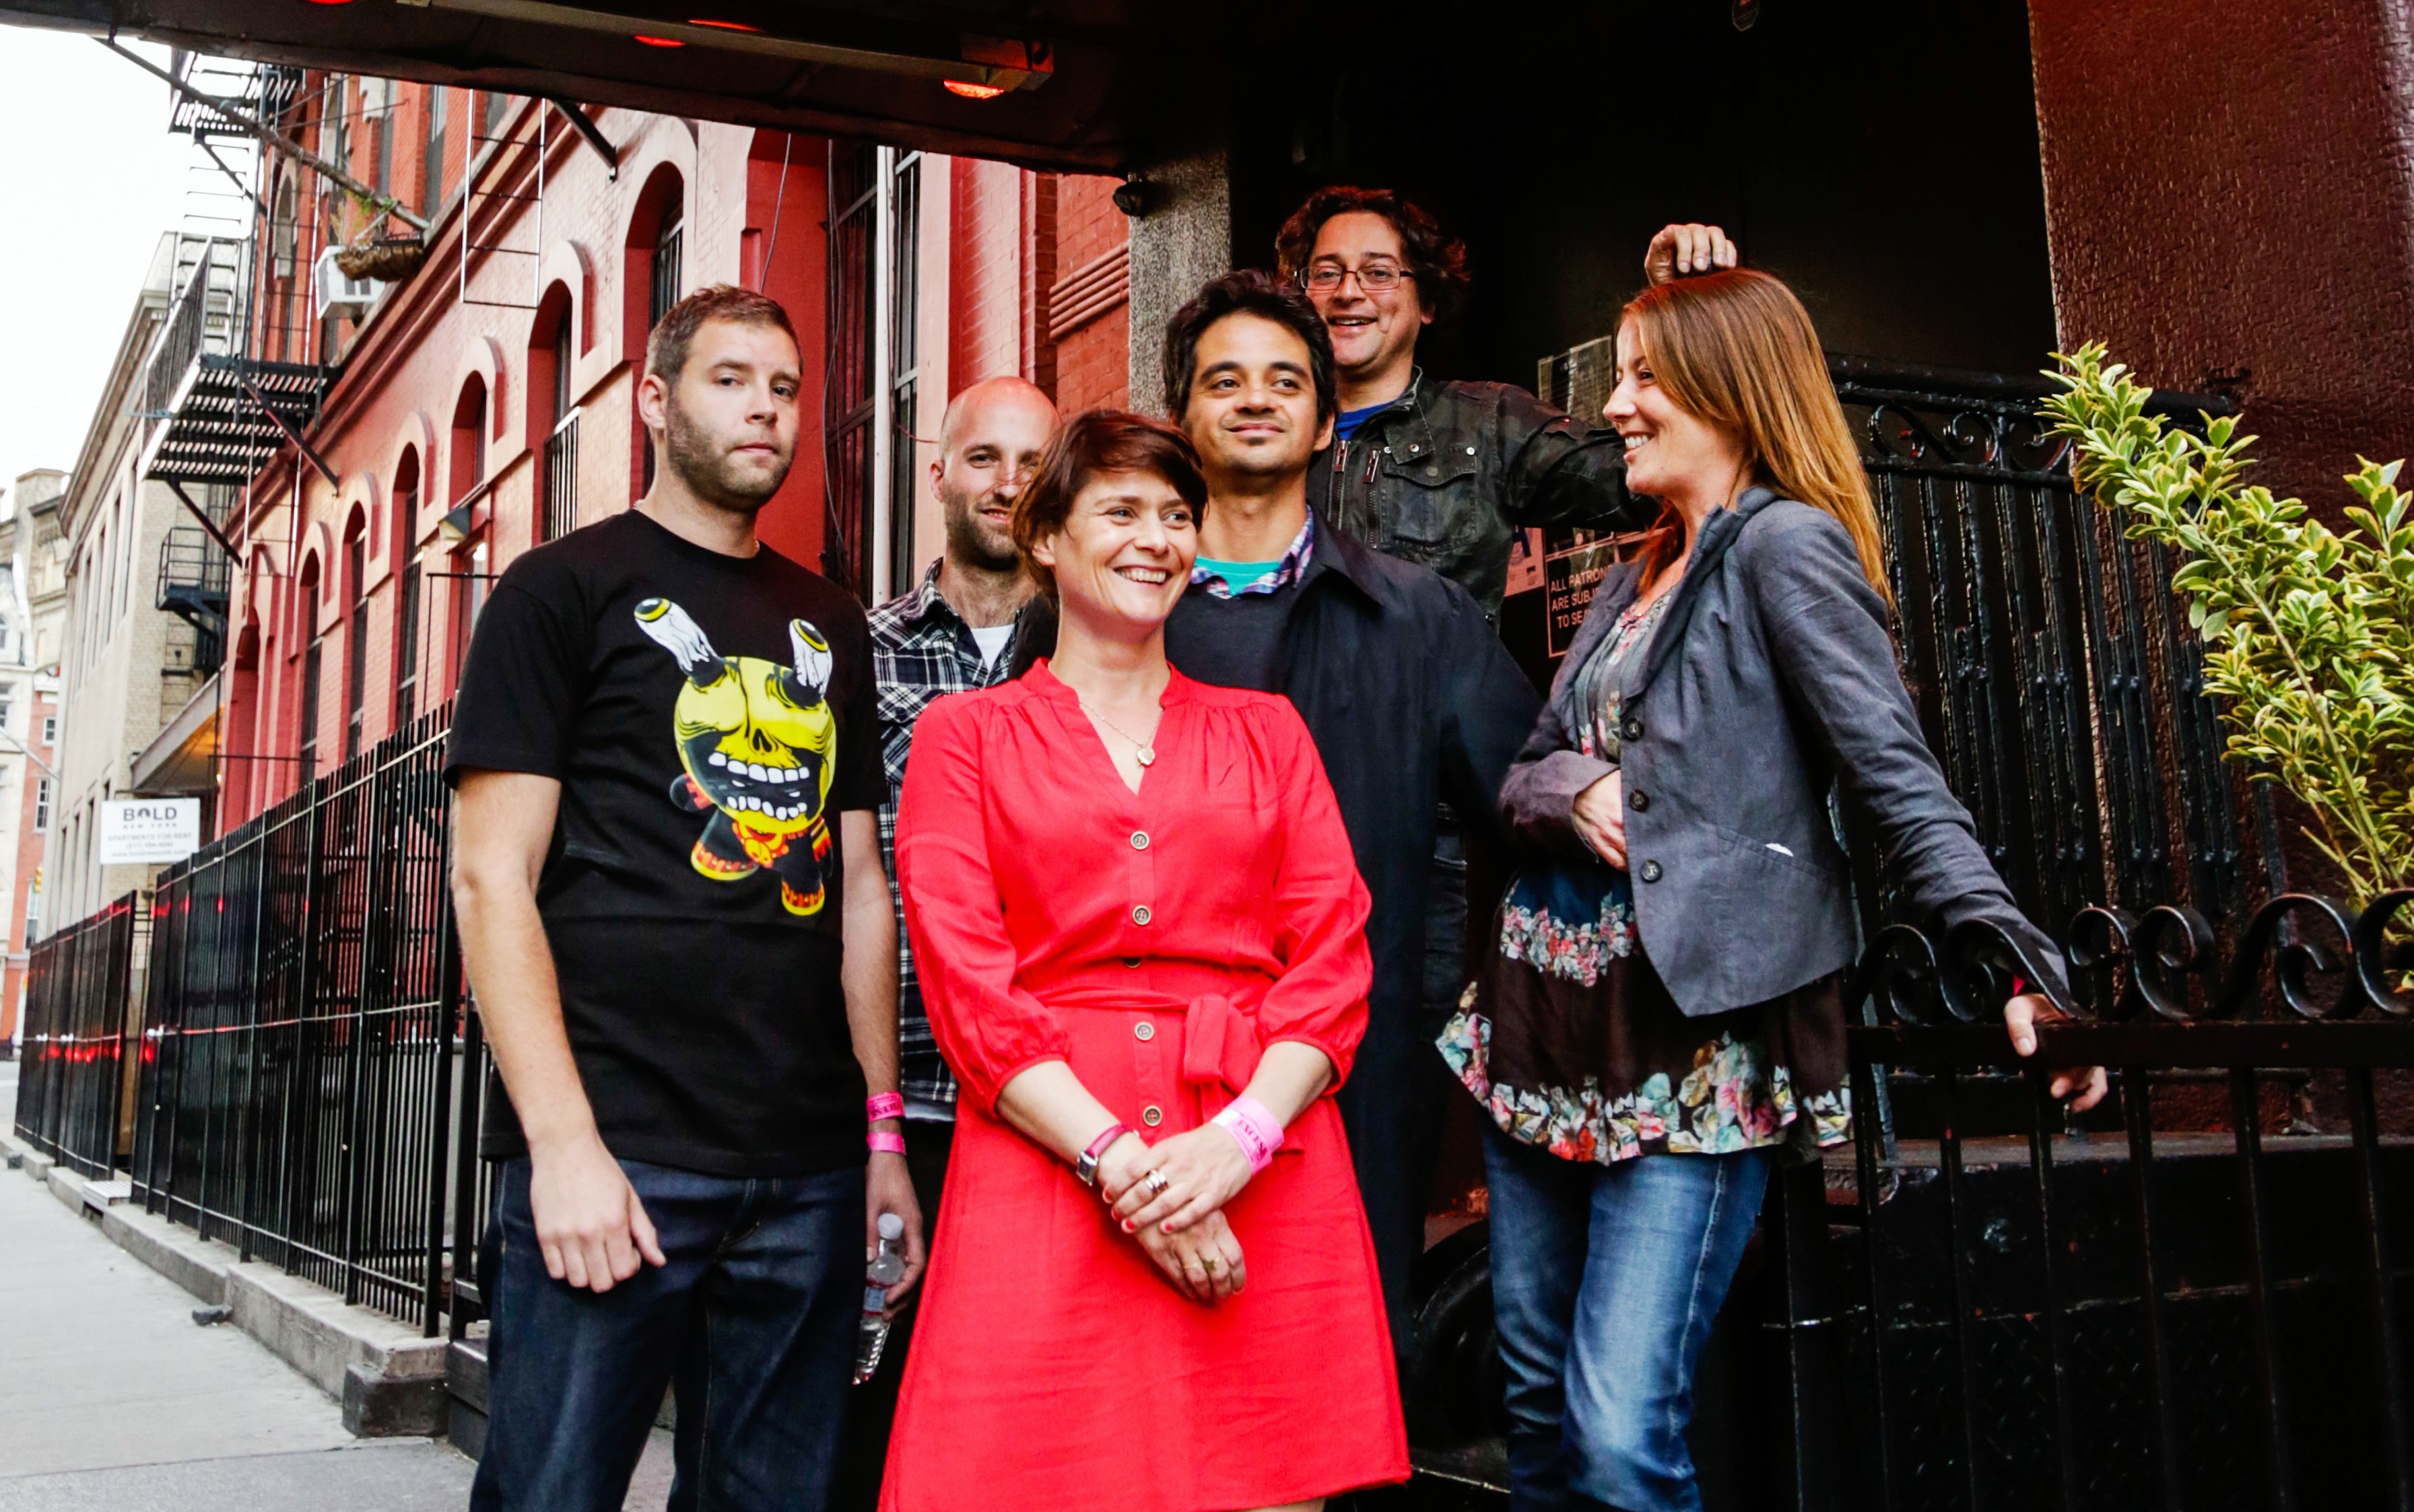 Sophie Barker, center, will be performing with her new band on a headline tour with fellow Brit band The Egg, at The Belly Up May 13. Courtesy photo